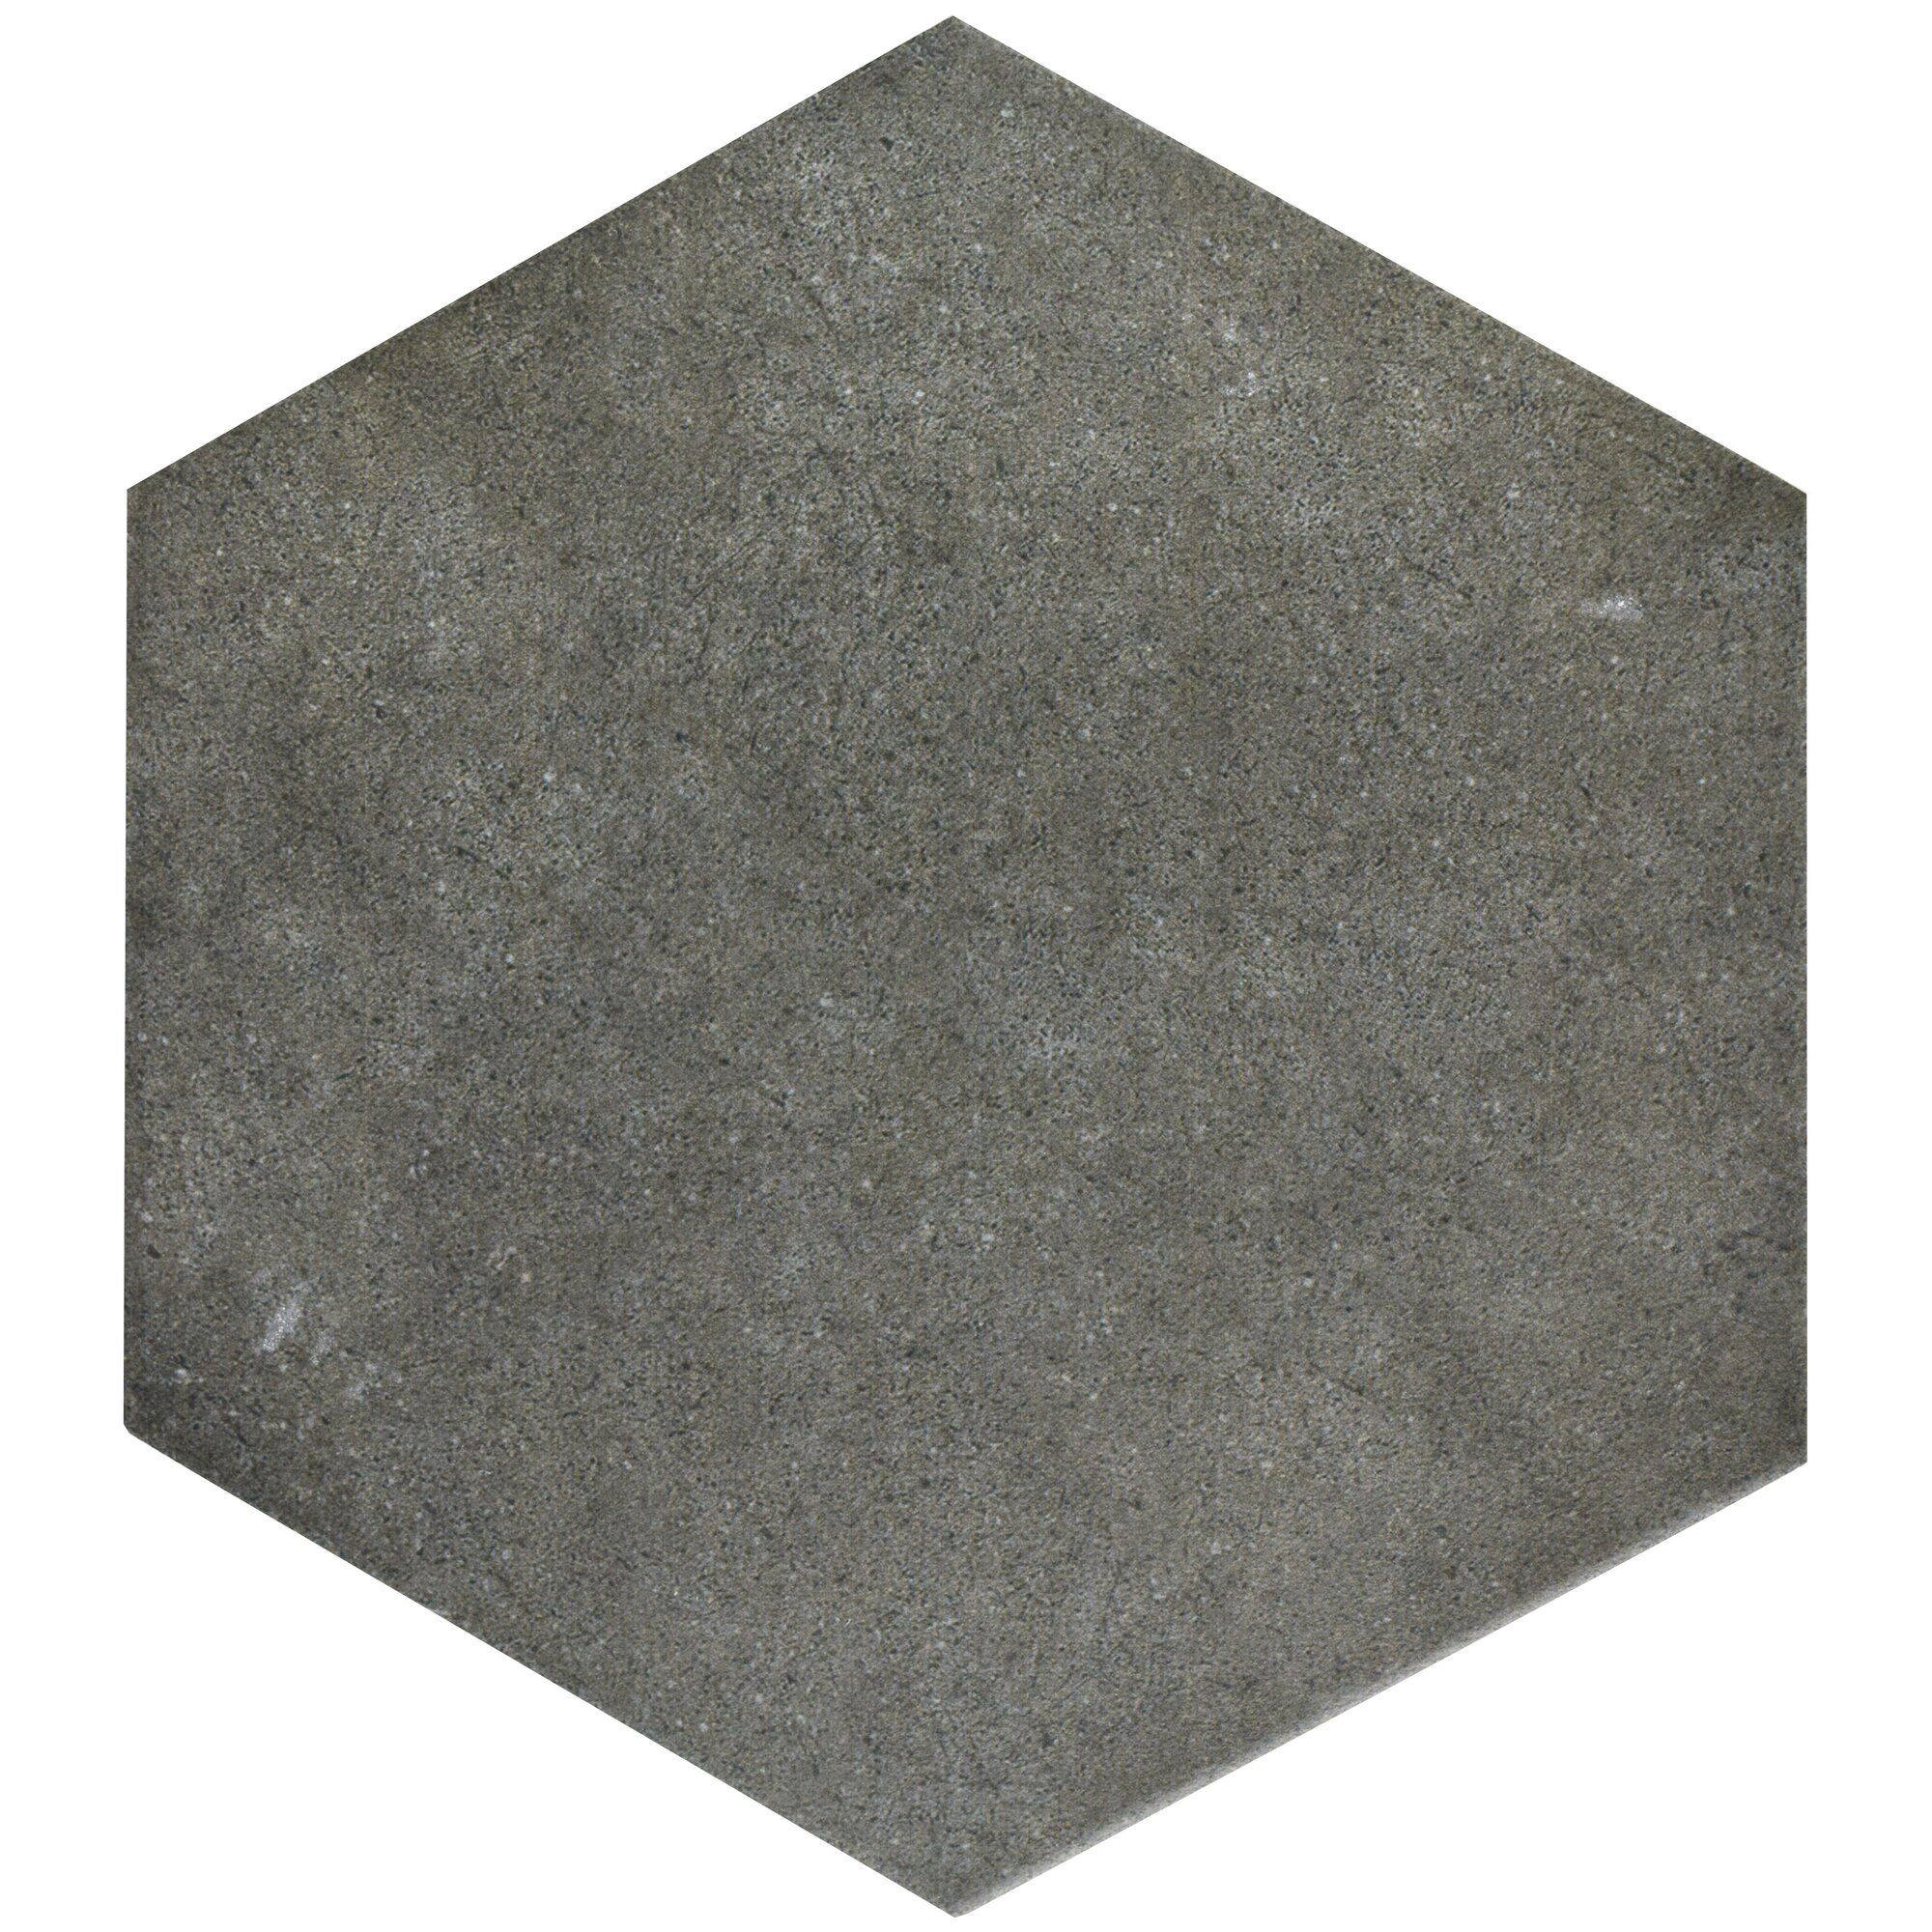 Octagon Floor Tile octagon floor tile Annata 863 X 988 Hex Porcelain Field Tile